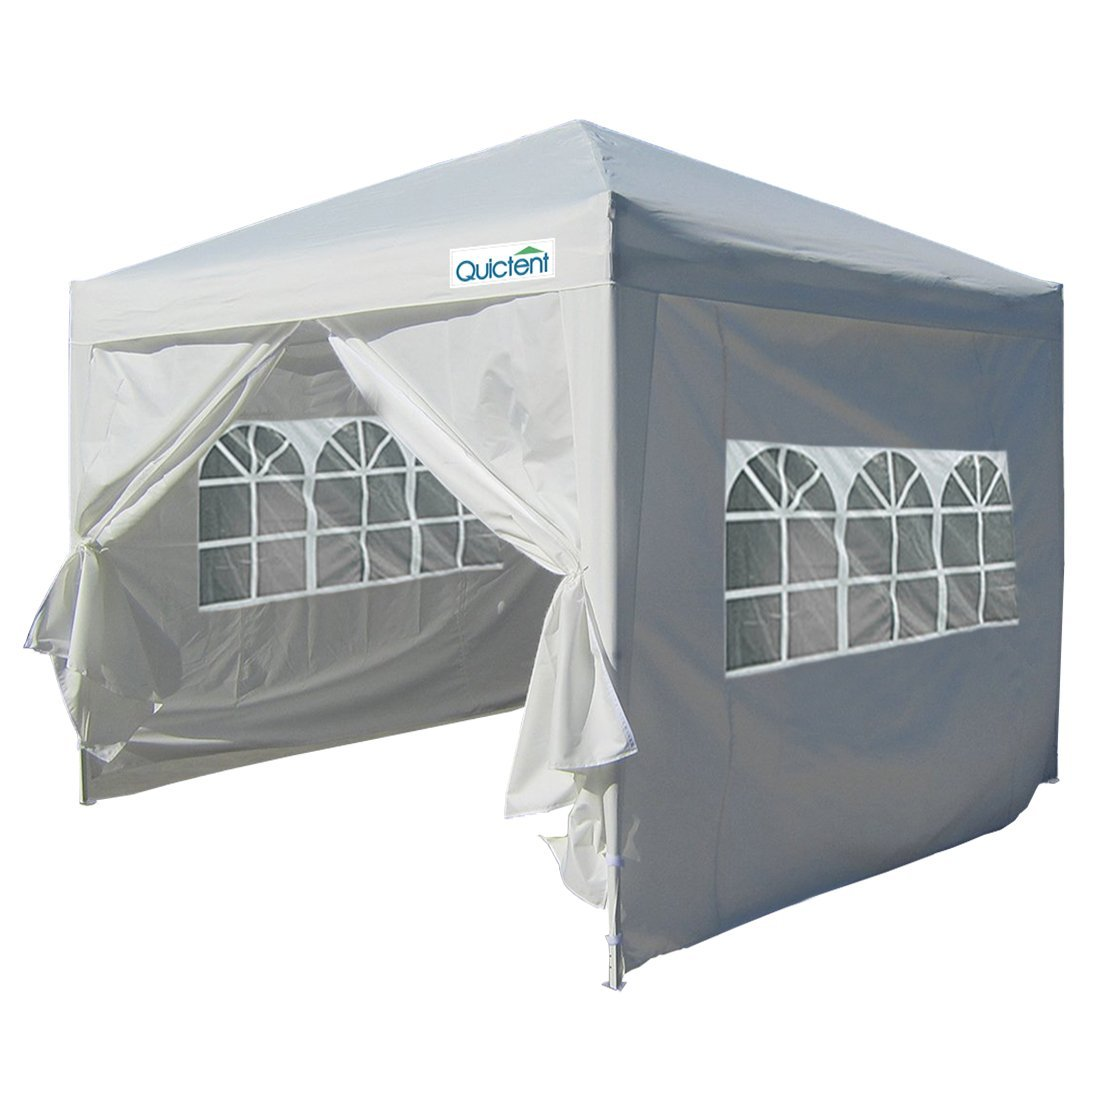 Quictent Silvox Waterproof 10x10' EZ Pop Up Canopy Commercial Gazebo Party Tent White Portable Style Removable Sides... by